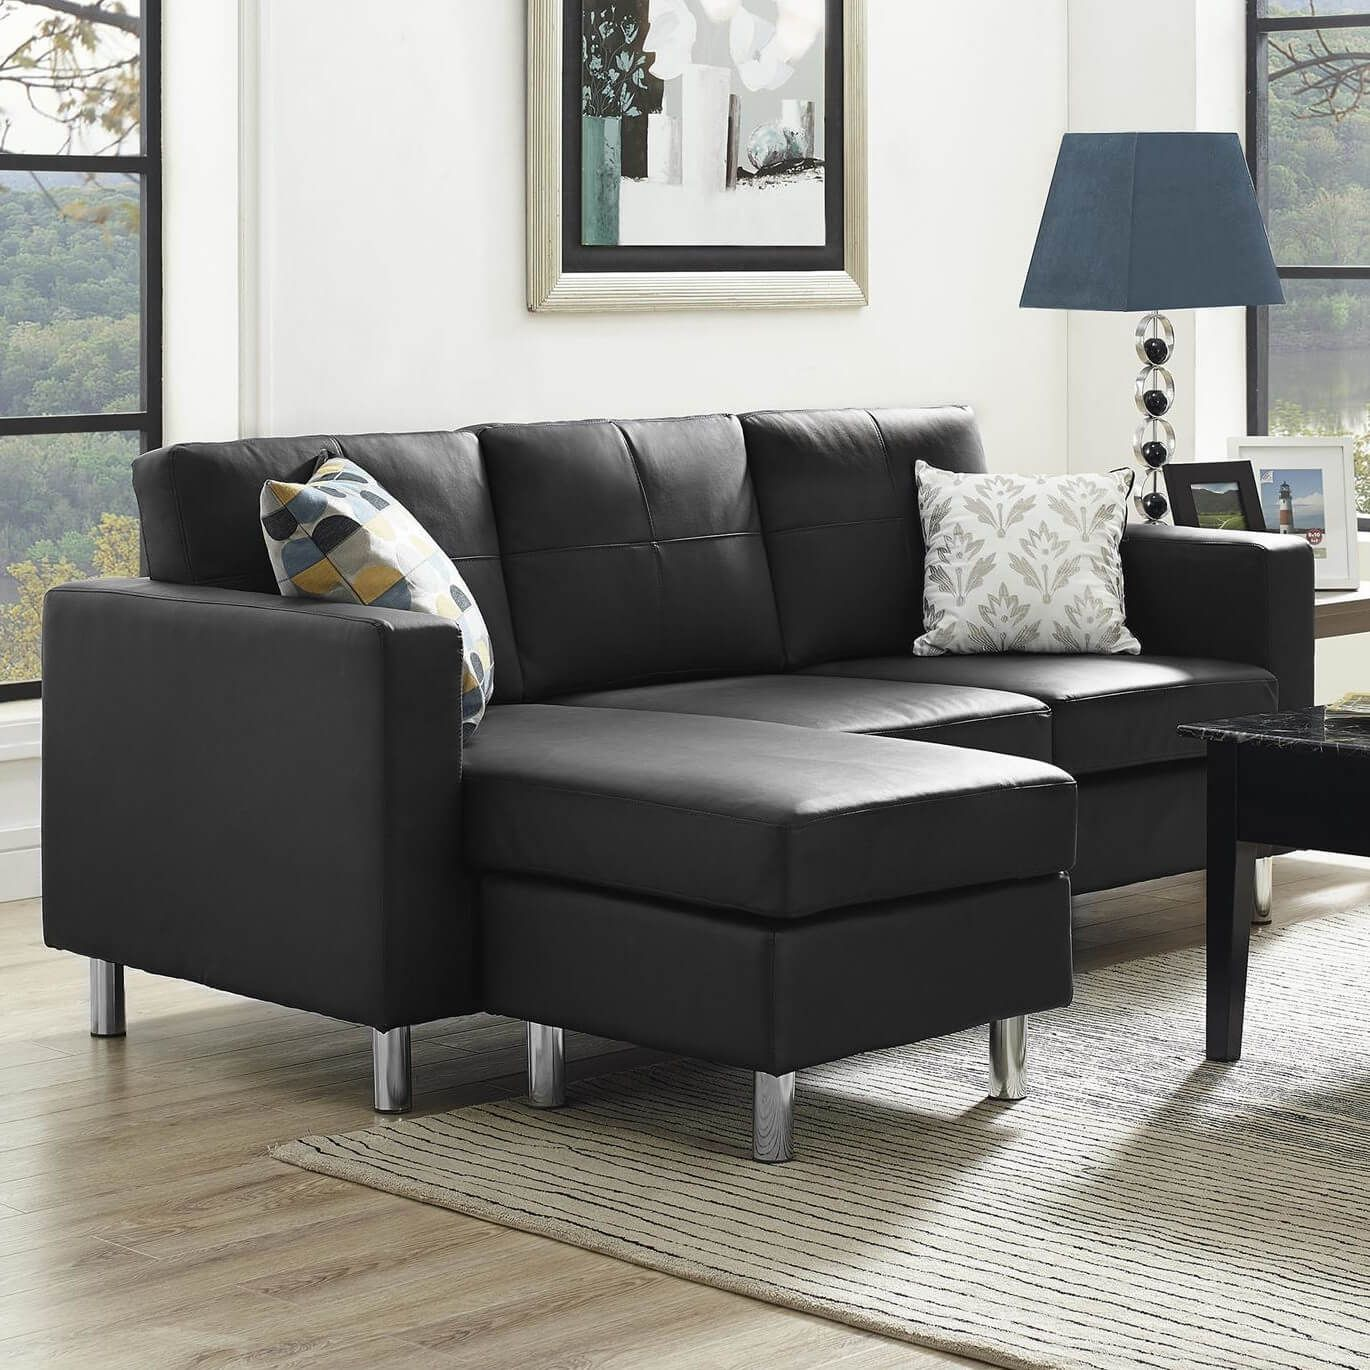 13 Cheap Sectional Sofas Under 500 Sofas For Small Spaces